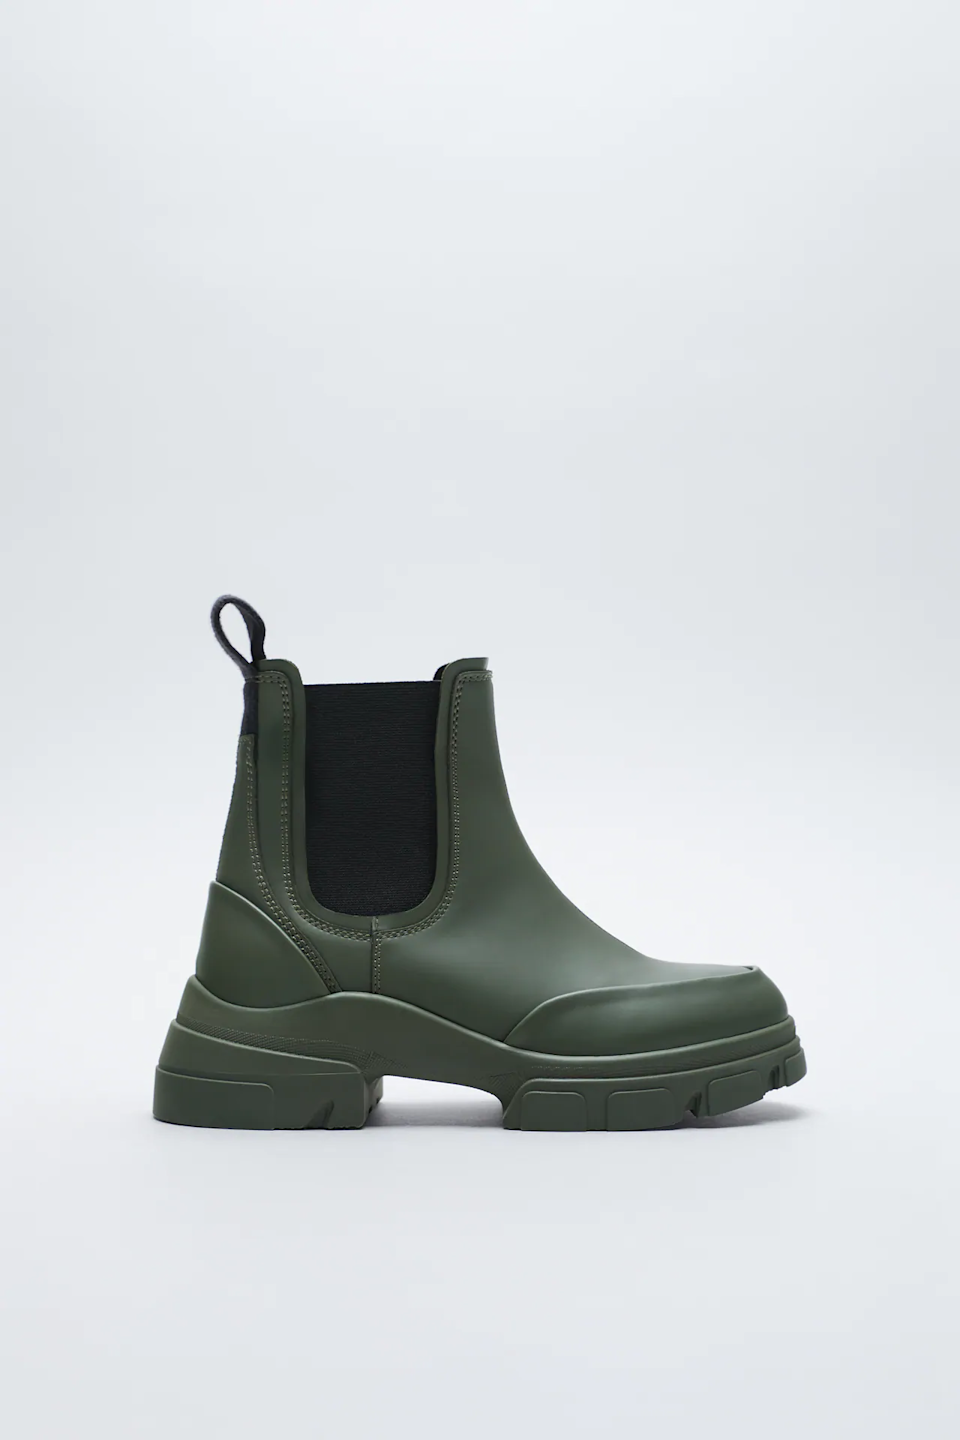 "<br><br><strong>Zara</strong> Low Heel Rubberized Ankle Boots, $, available at <a href=""https://go.skimresources.com/?id=30283X879131&url=https%3A%2F%2Fwww.zara.com%2Fus%2Fen%2Flow-heel-rubberized-ankle-boots-p11129710.html"" rel=""nofollow noopener"" target=""_blank"" data-ylk=""slk:Zara"" class=""link rapid-noclick-resp"">Zara</a>"